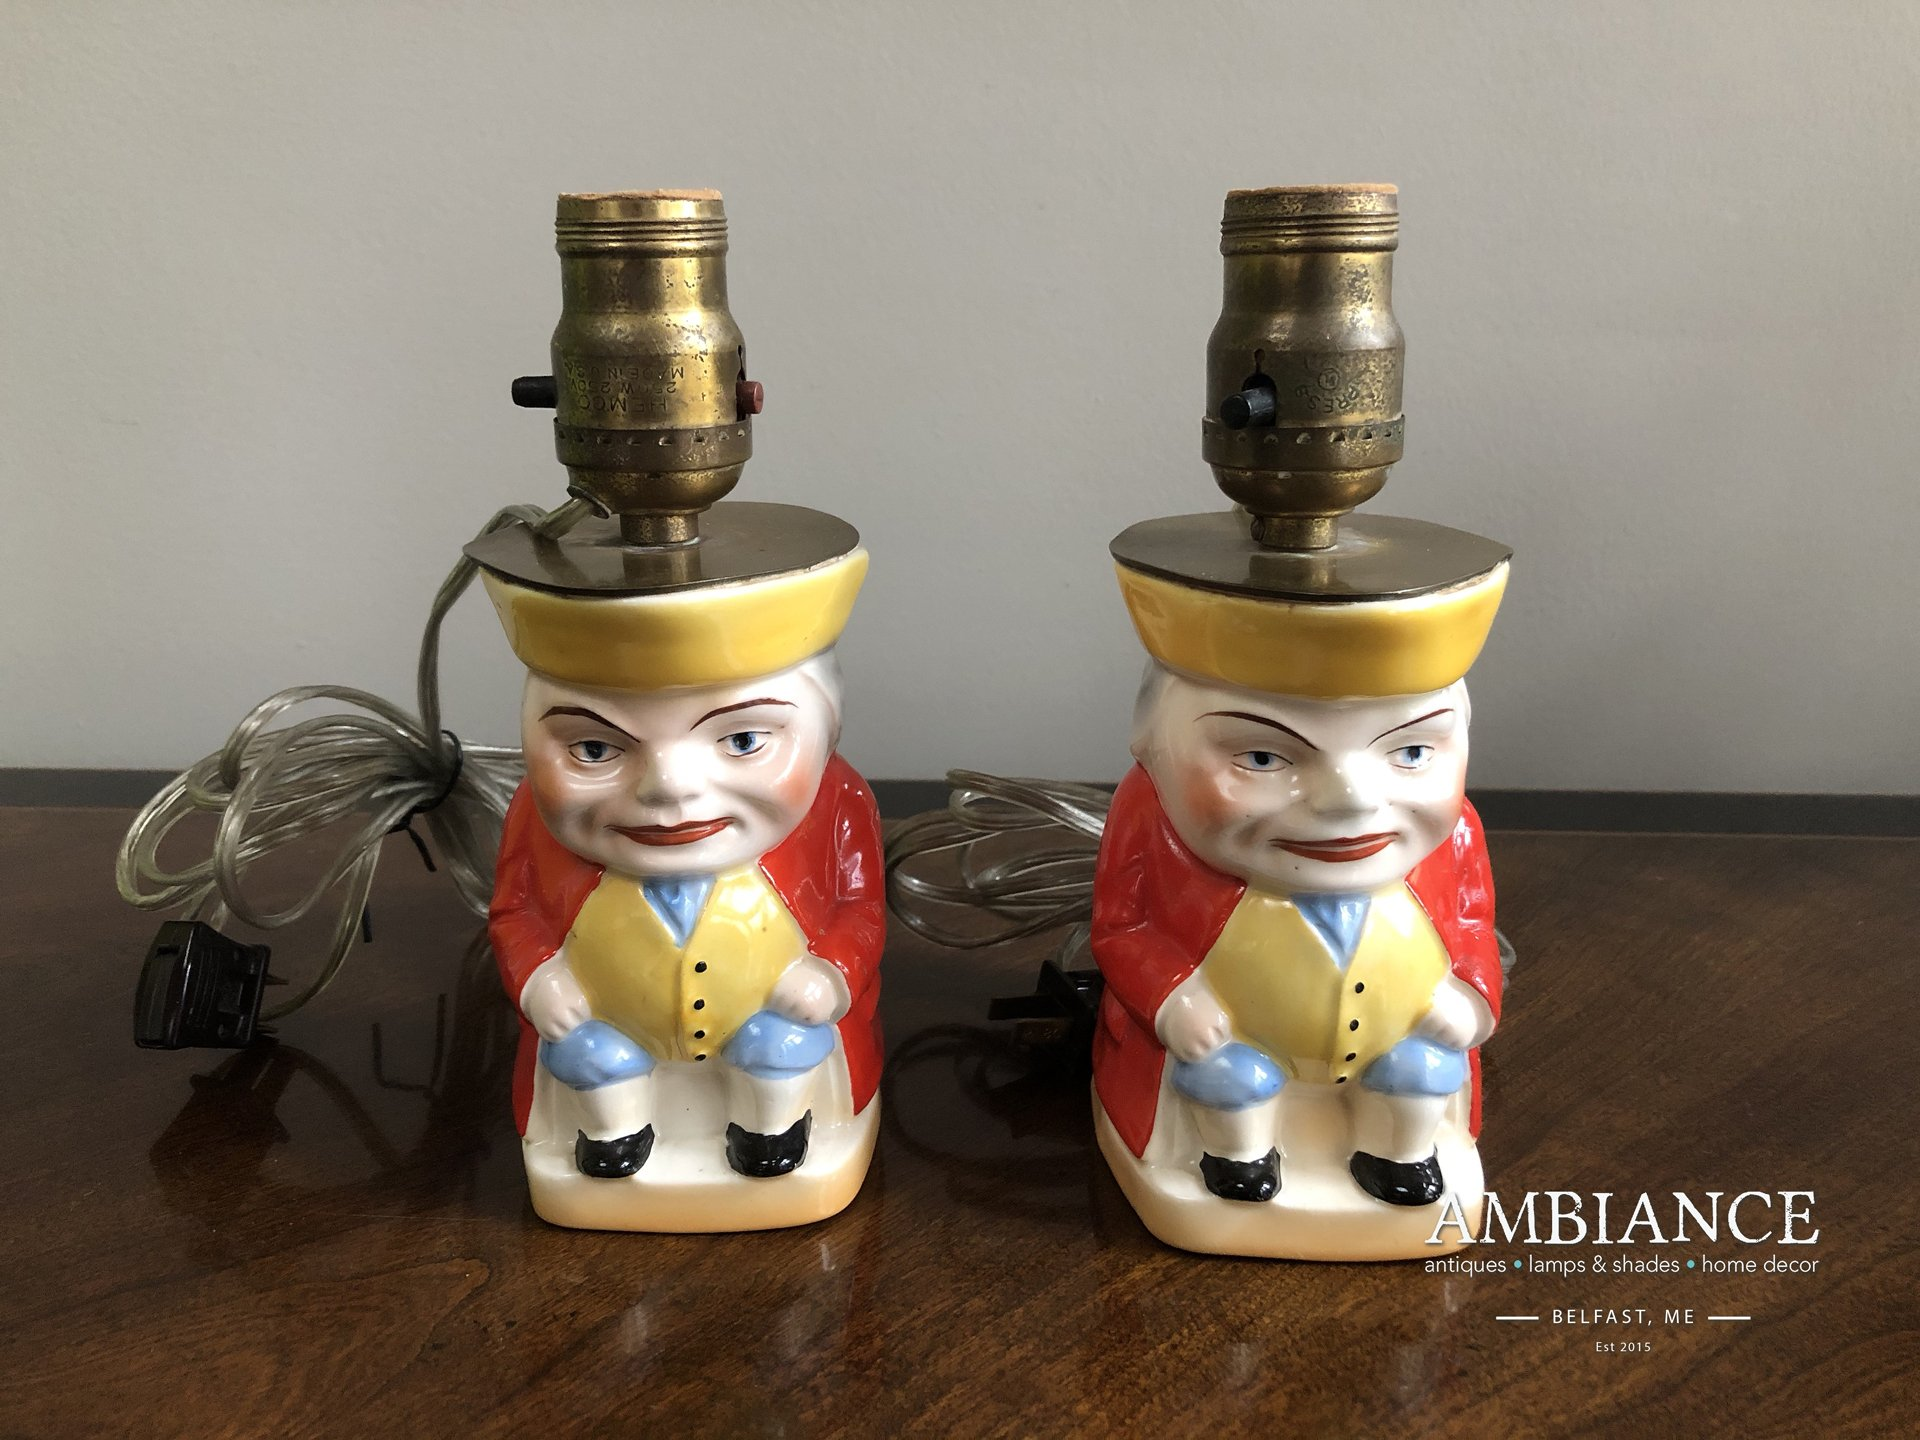 1930s Toby Jug Vintage Lamp for sale online at AMBIANCE (00)